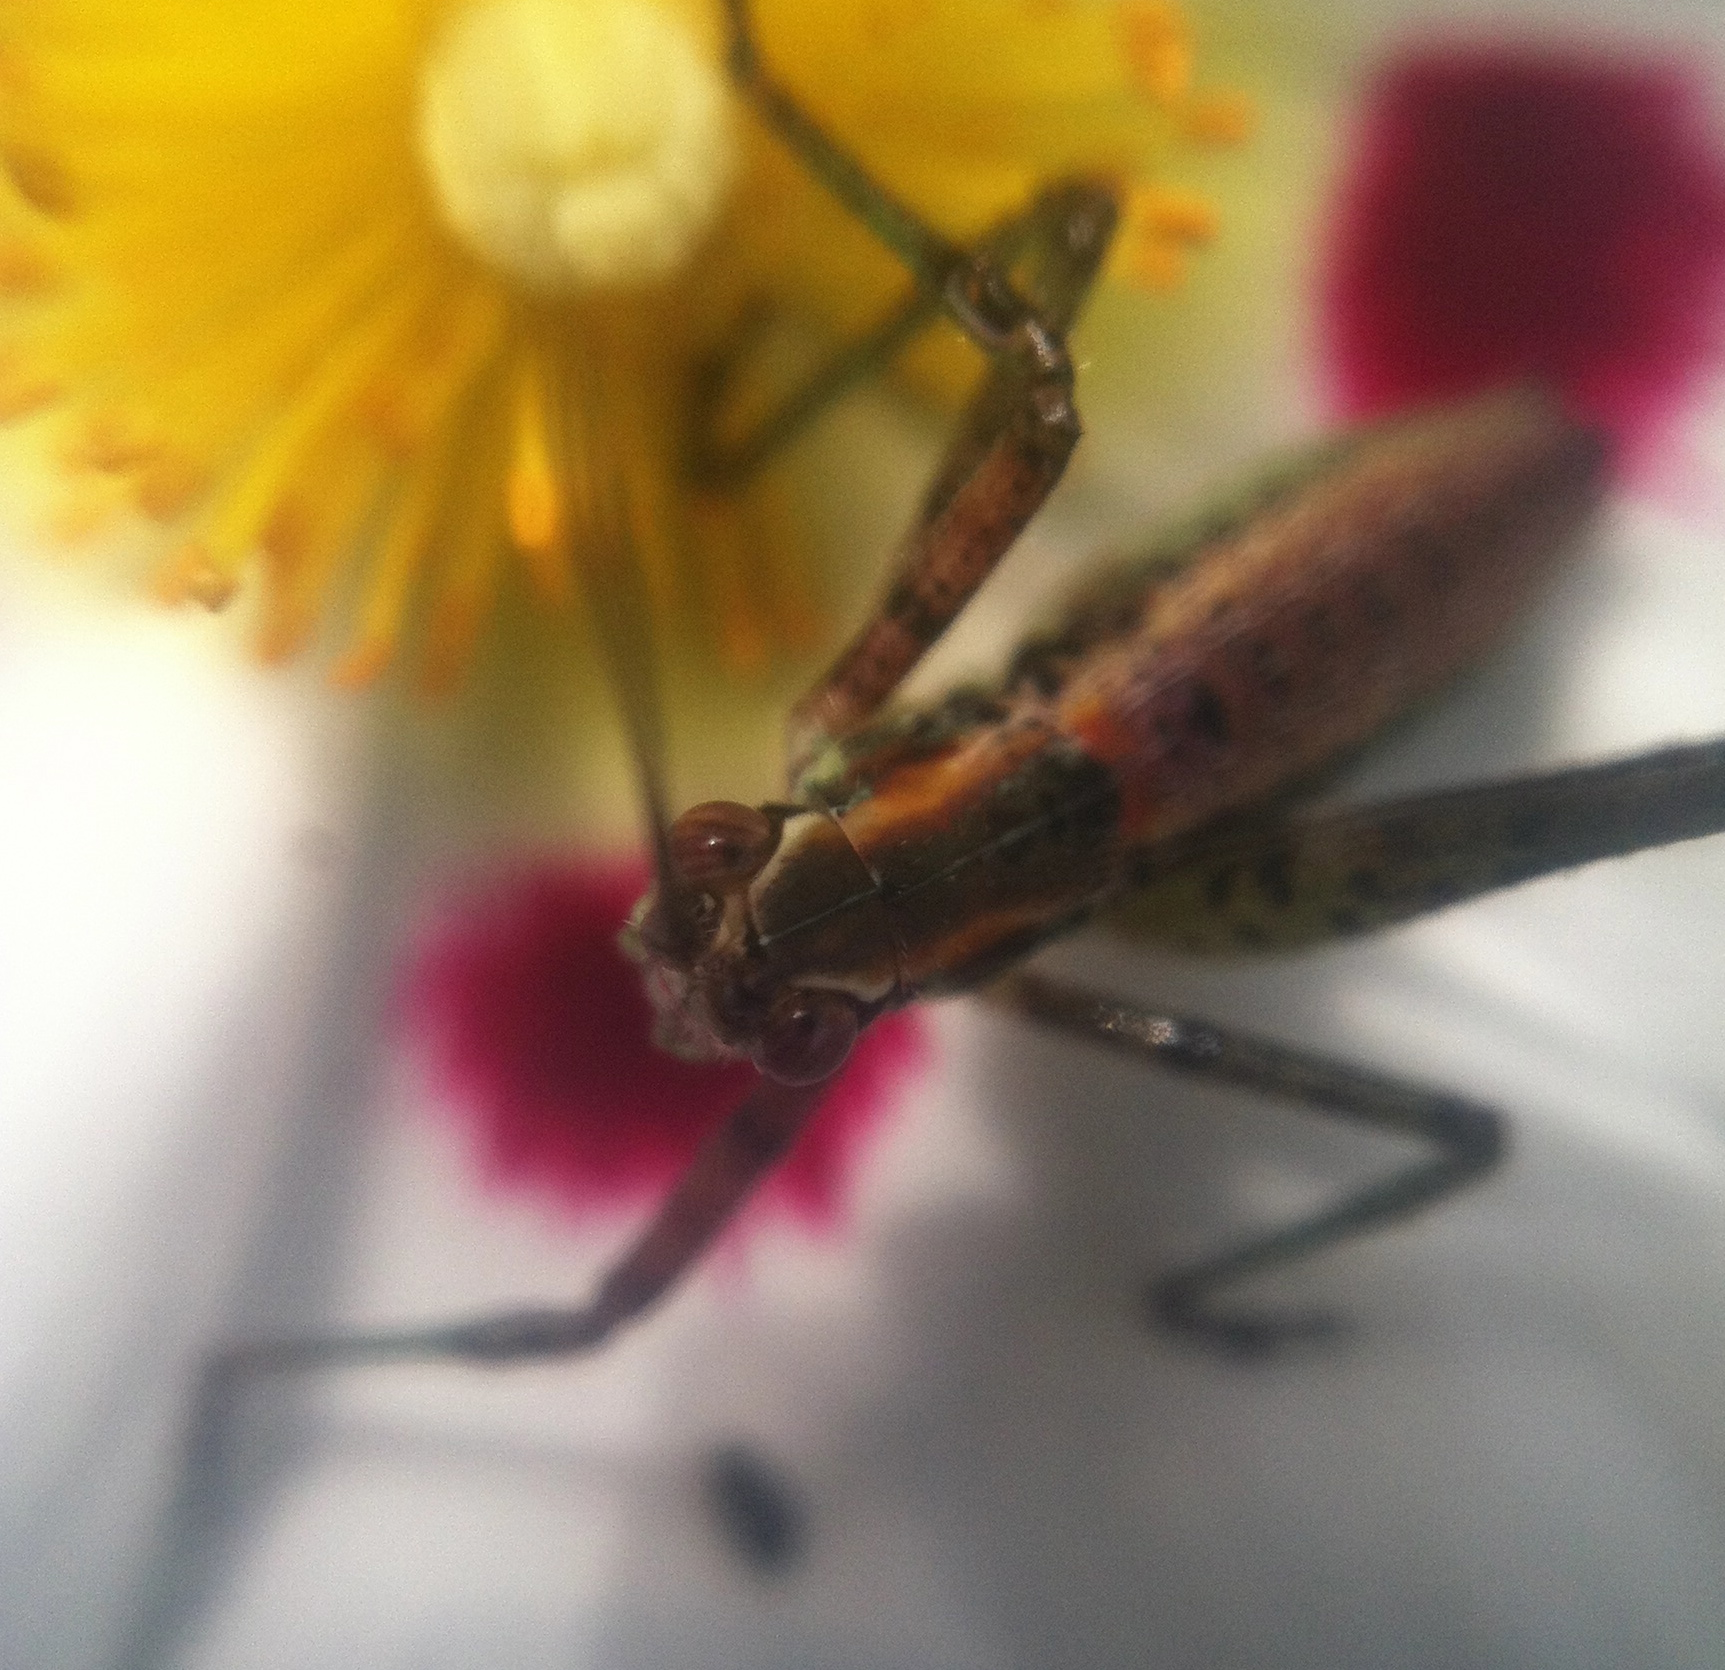 Baby cricket sipping nectar from a flower (everything eats)